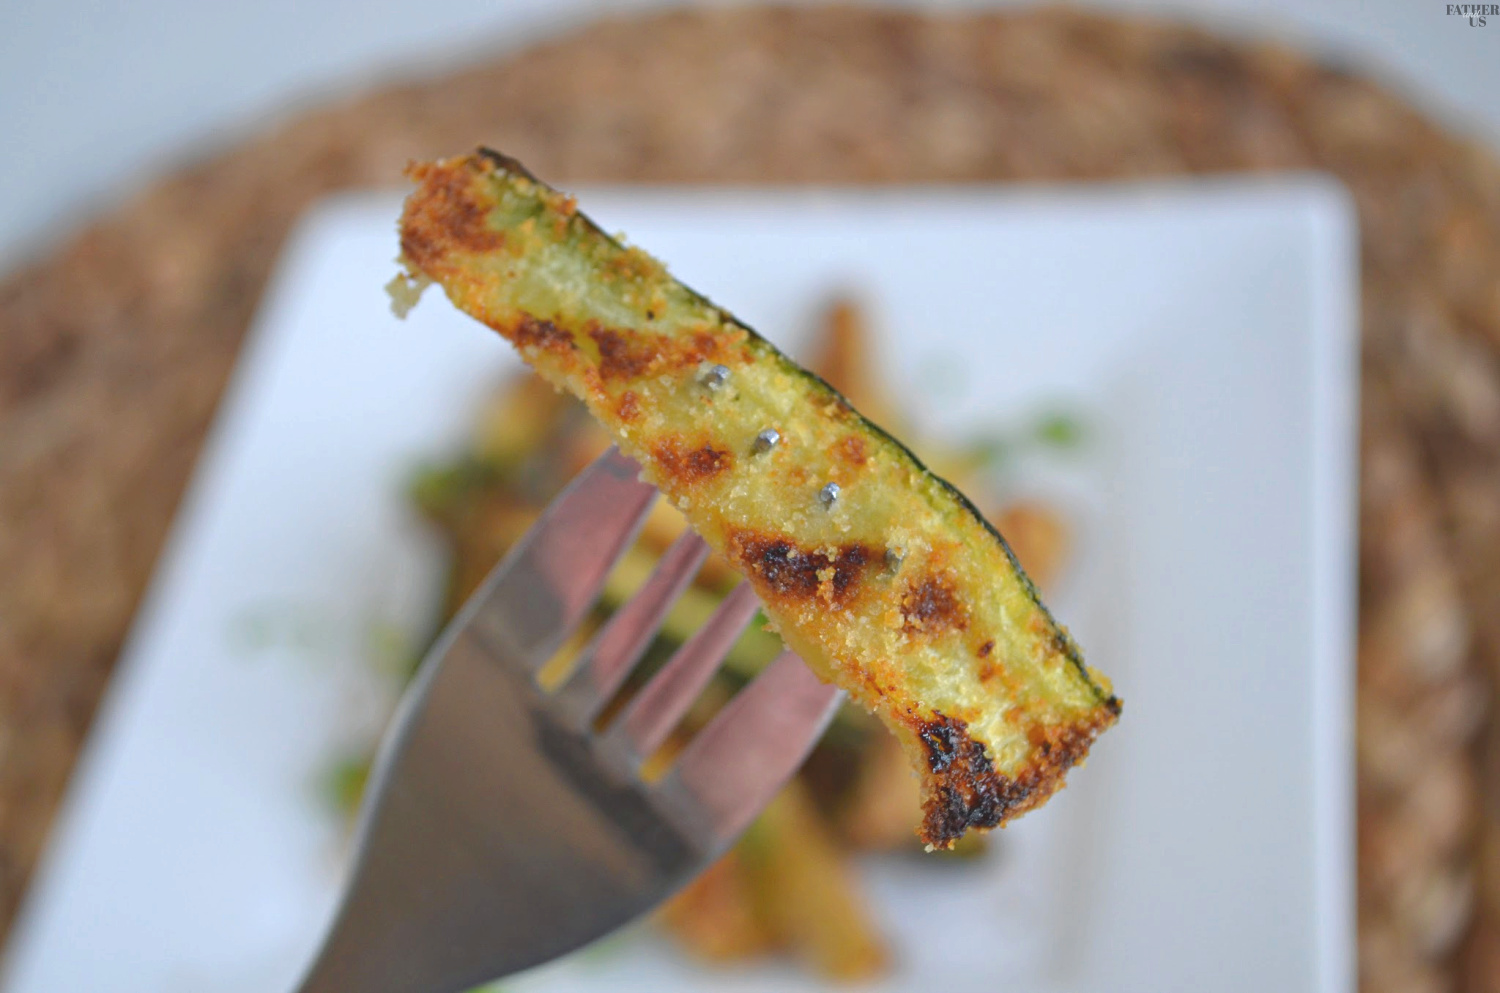 How To Cook Air Fryer Zucchini Fries